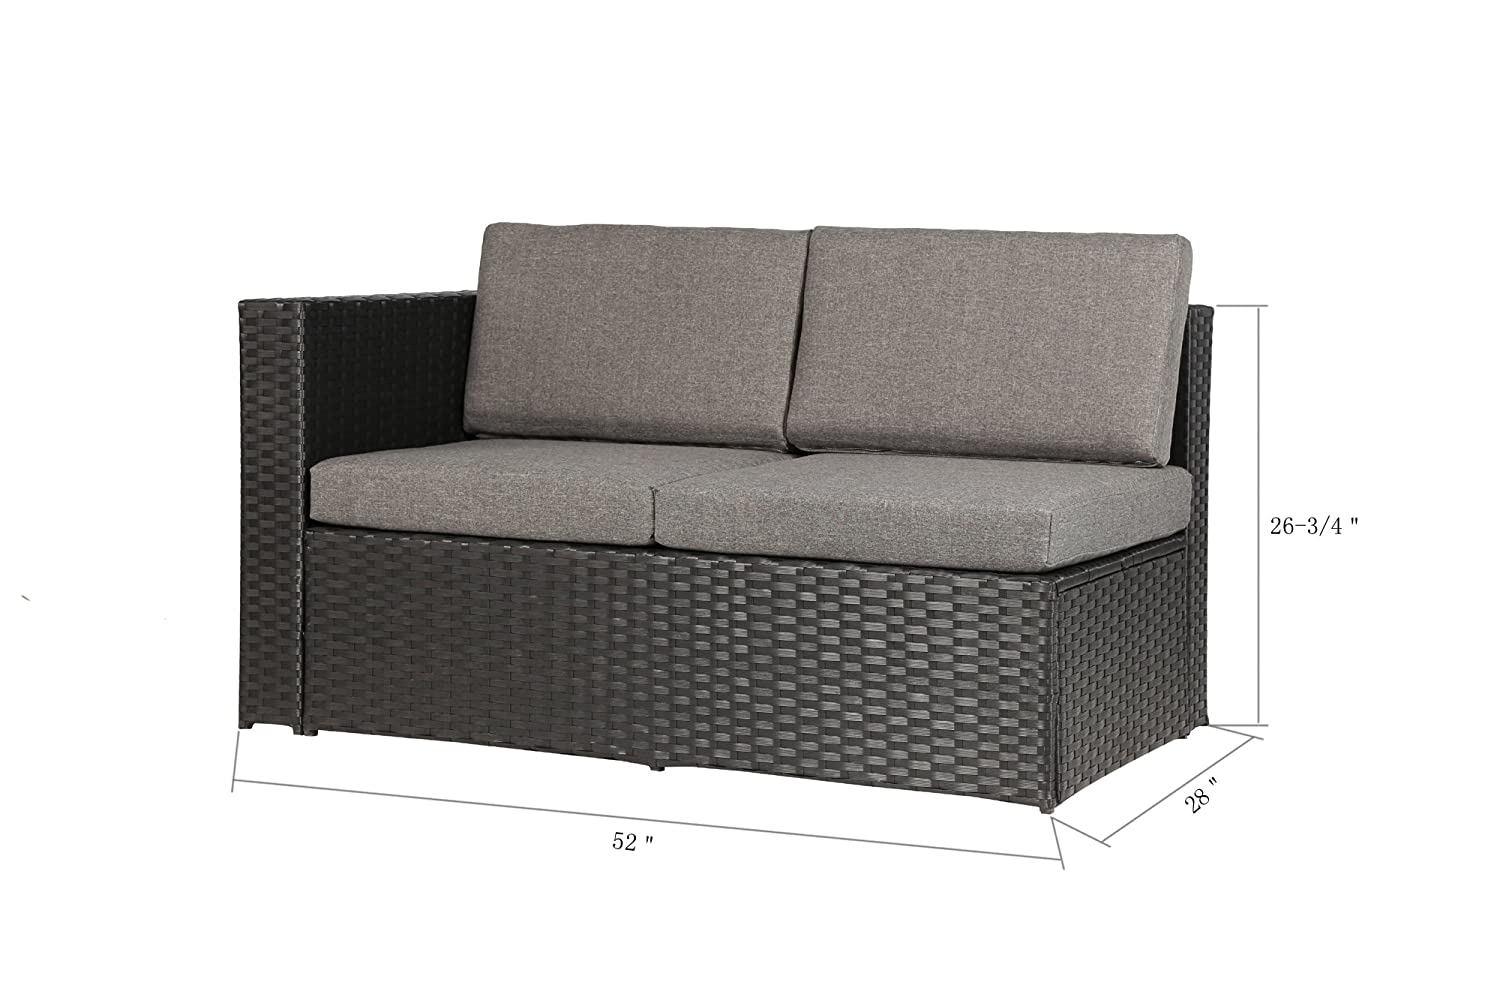 furniture corner pieces. Amazon.com : Magari Furniture MAG35 Complete Patio Garden 4 Piece Deep Seating Group Set With Cushion, Black \u0026 Outdoor Corner Pieces E